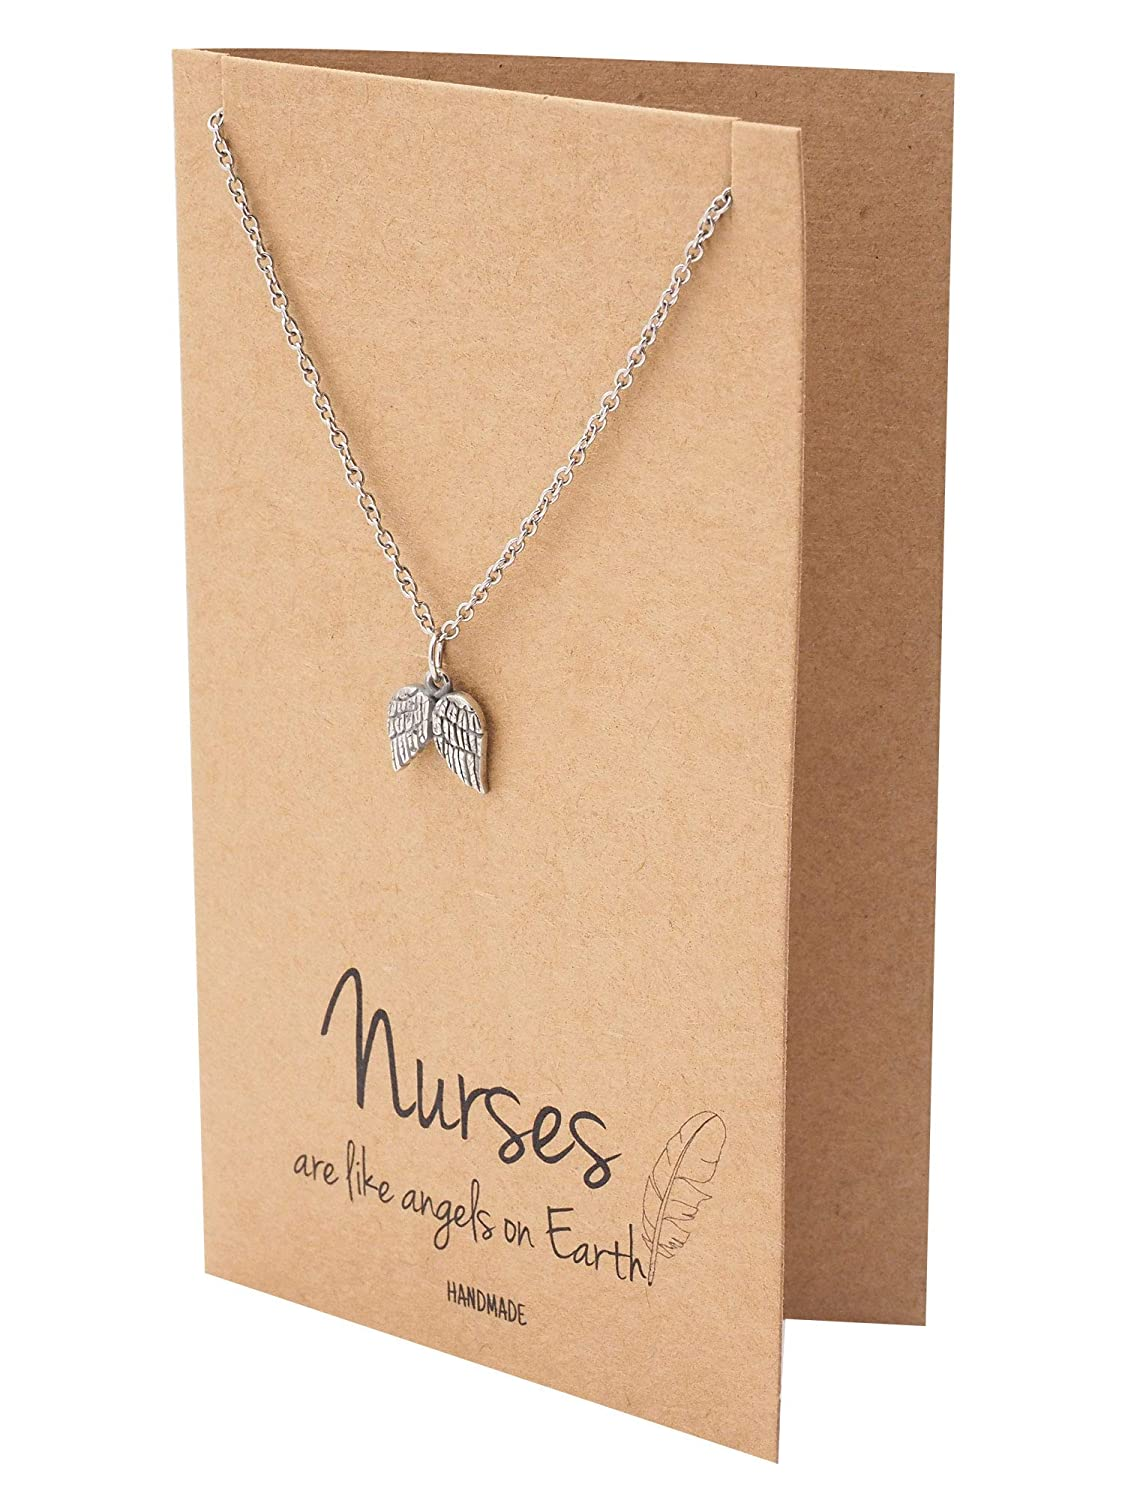 Doctors Quan Jewelry Nurse Necklace Handcrafted Angel-Wings Pendant RN Pre-Med Students Presents for Nurses Thank you Appreciation Graduation Gift Ideas Friendship Necklace Healthcare Workers